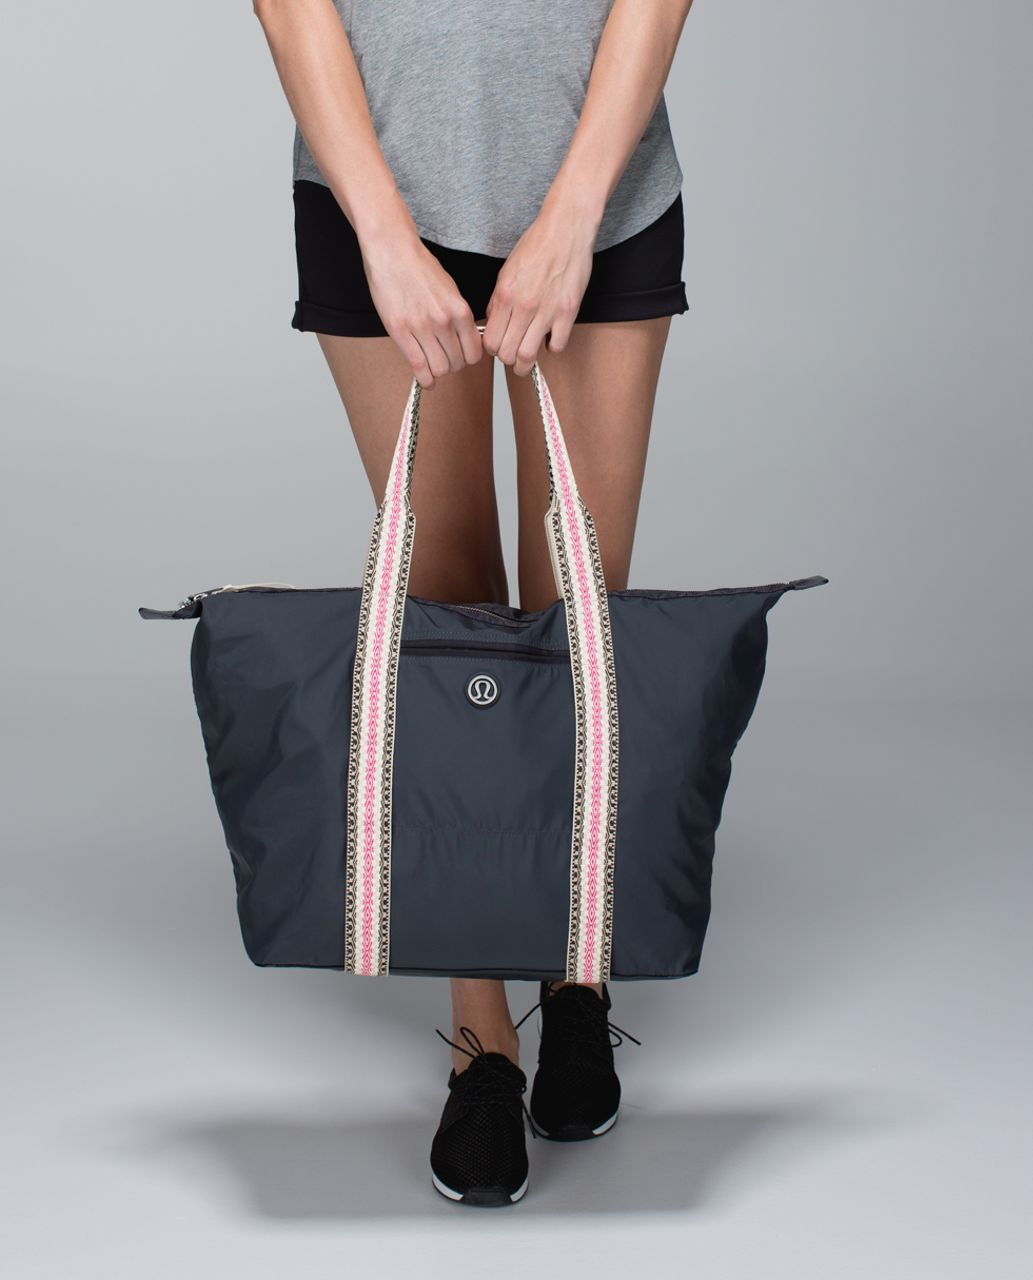 Lululemon All Day Asana Tote Deep Coal Lulu Fanatics